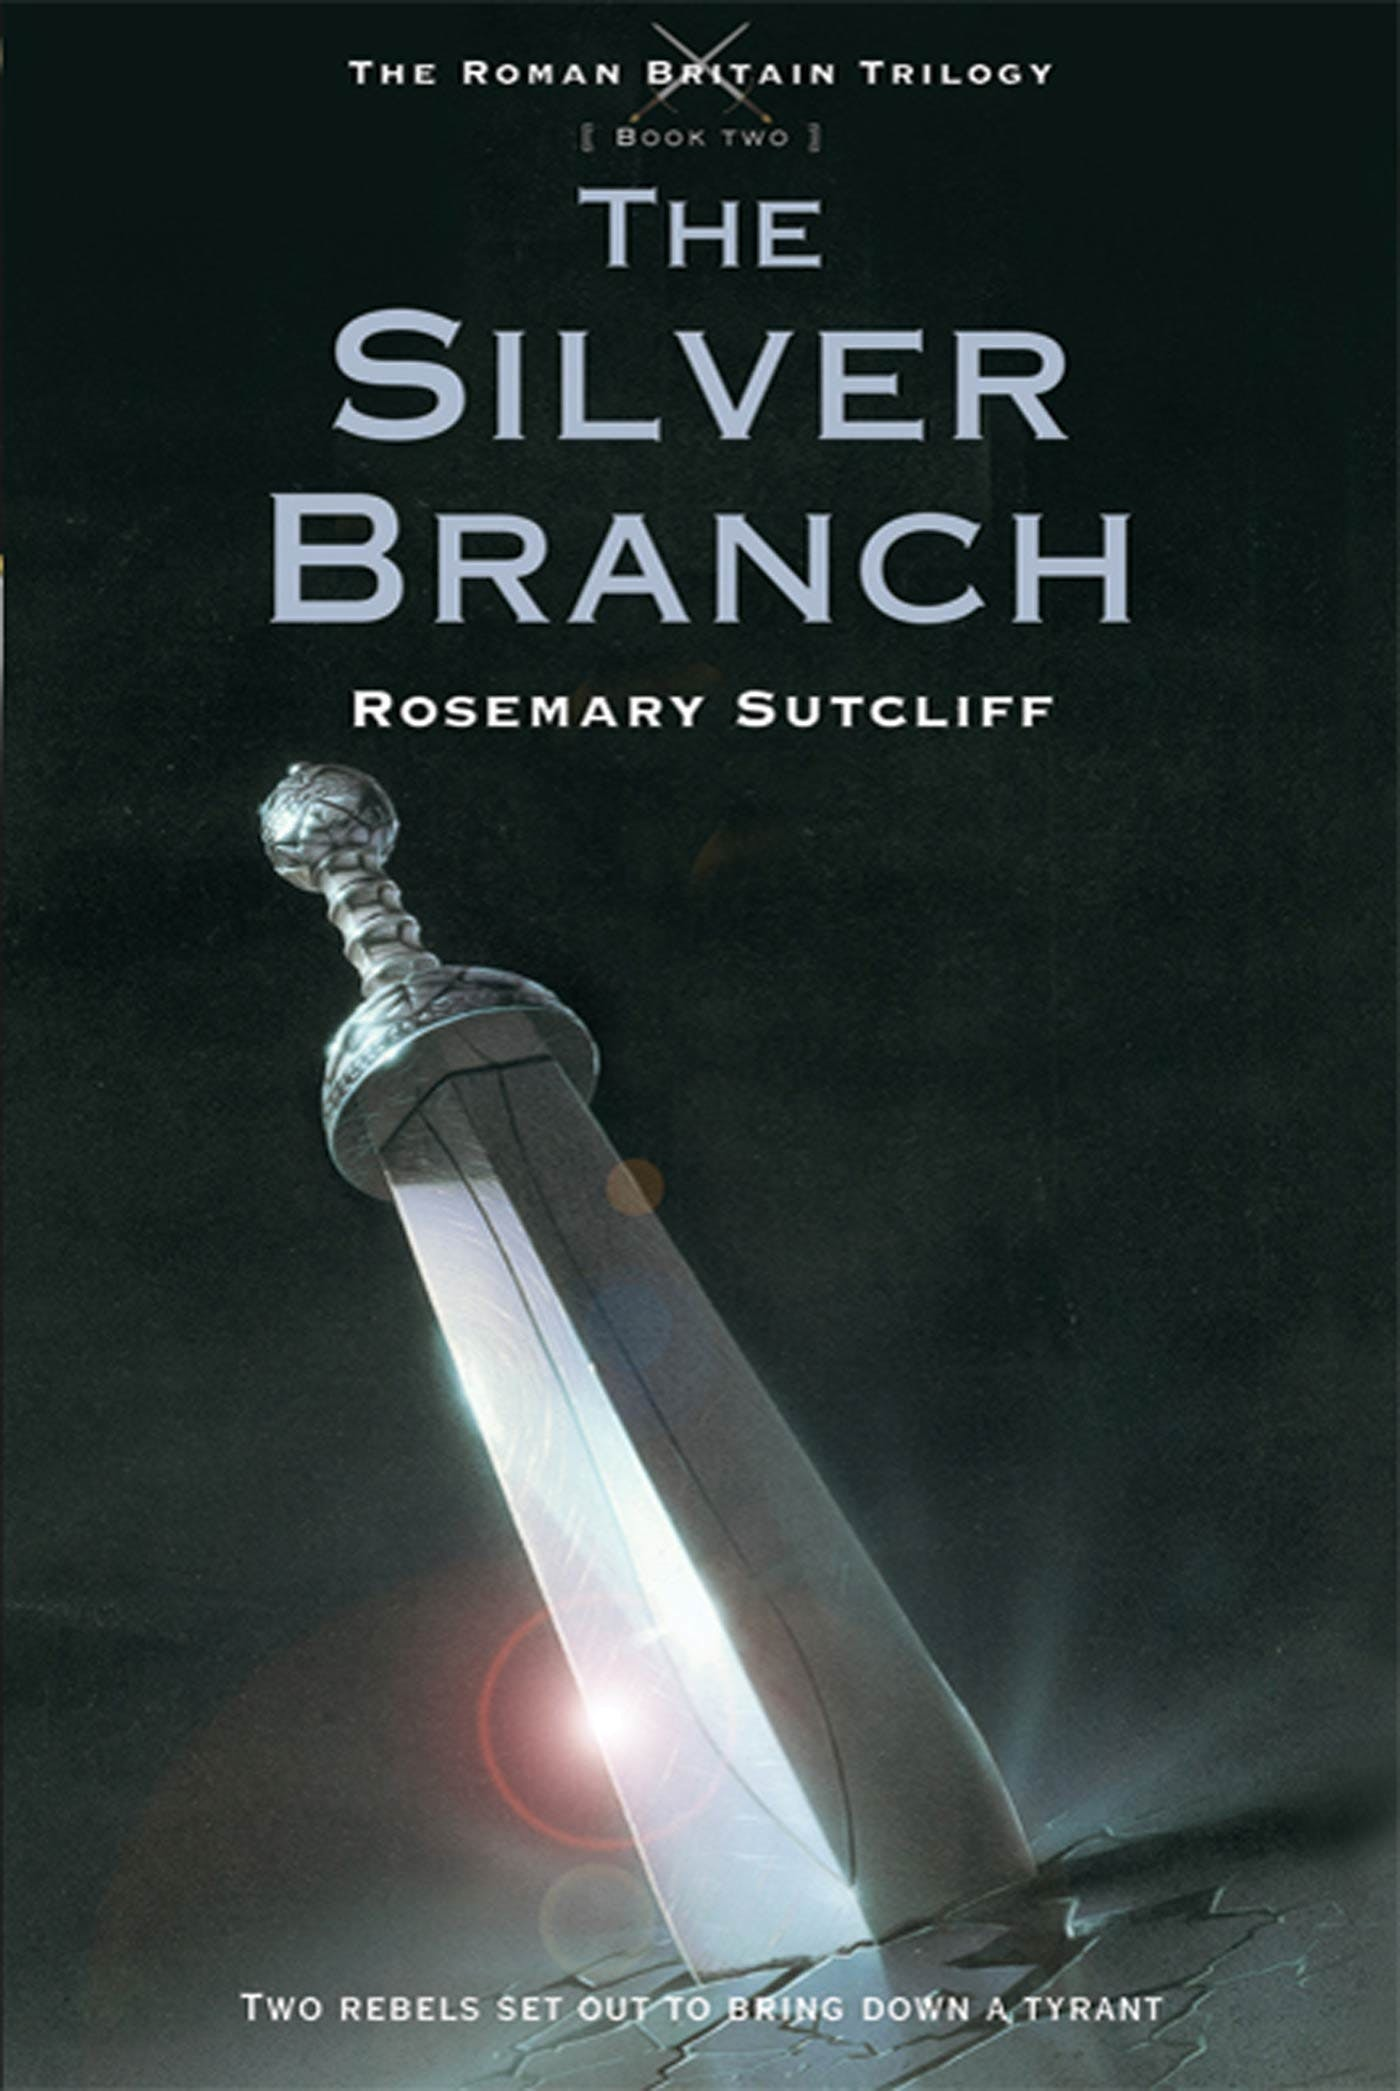 Image of The Silver Branch